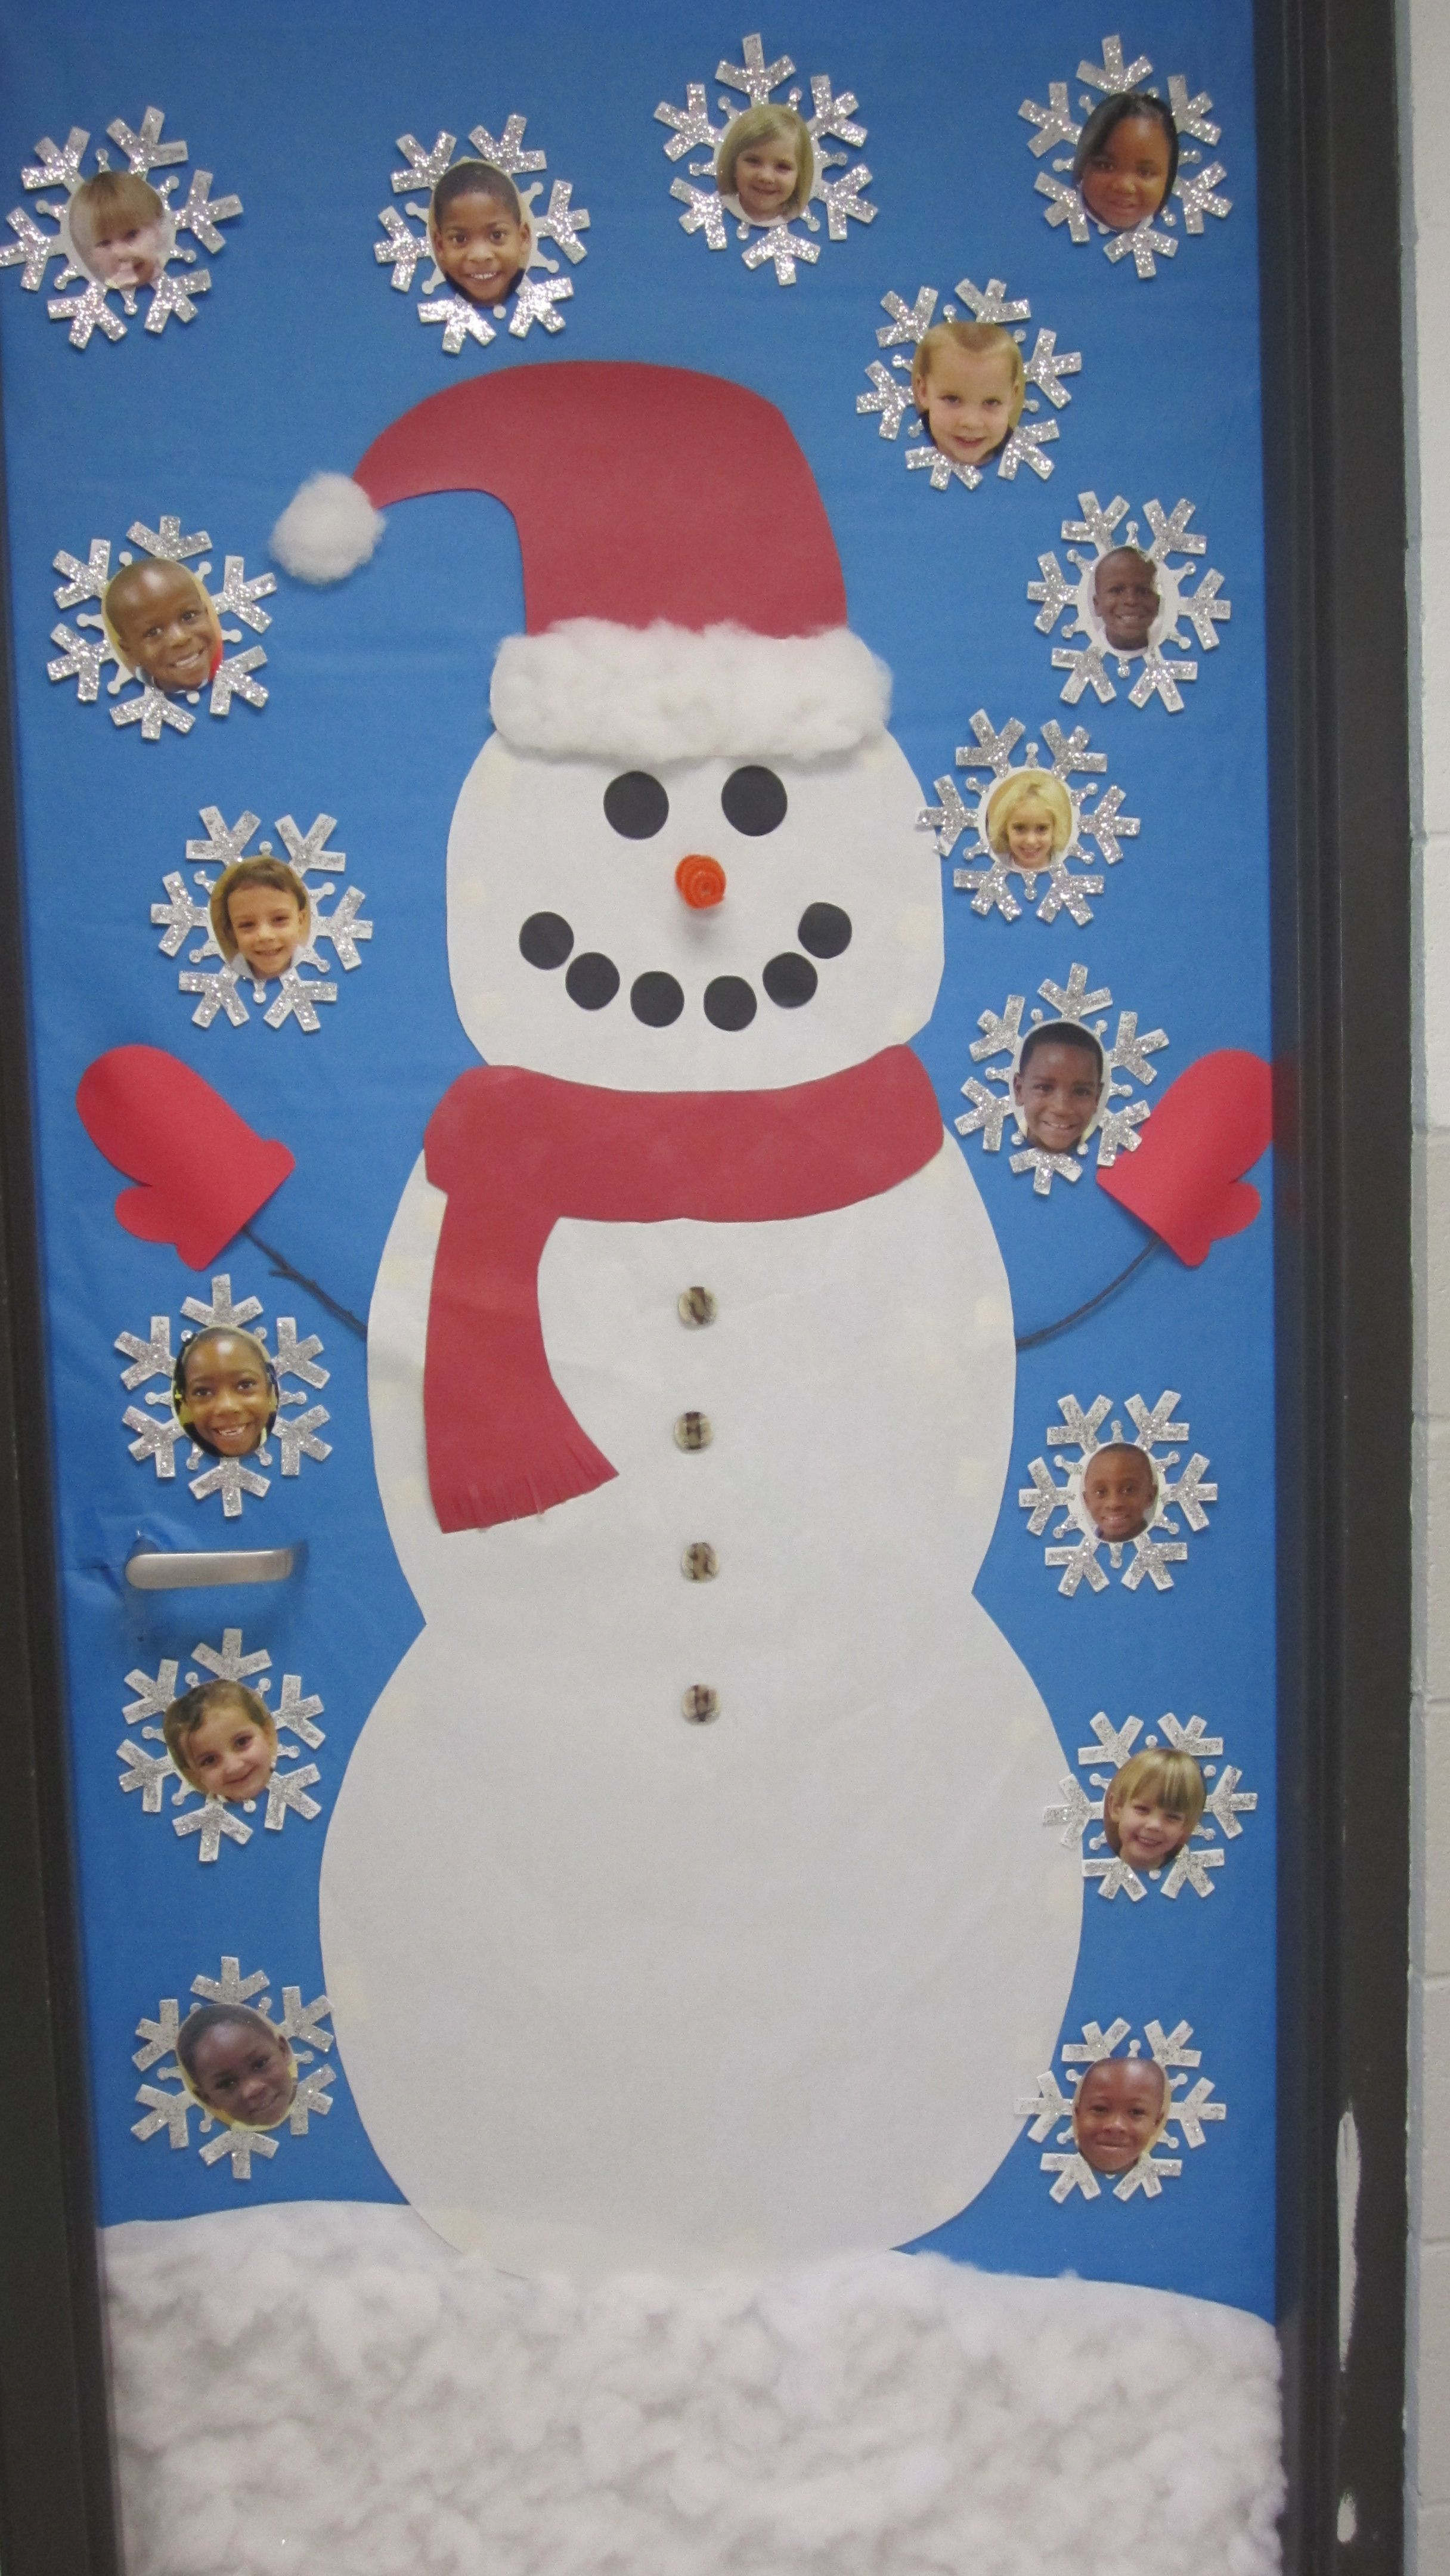 A Very Cute Frosty The Snowman Classroom Door Display That Includes